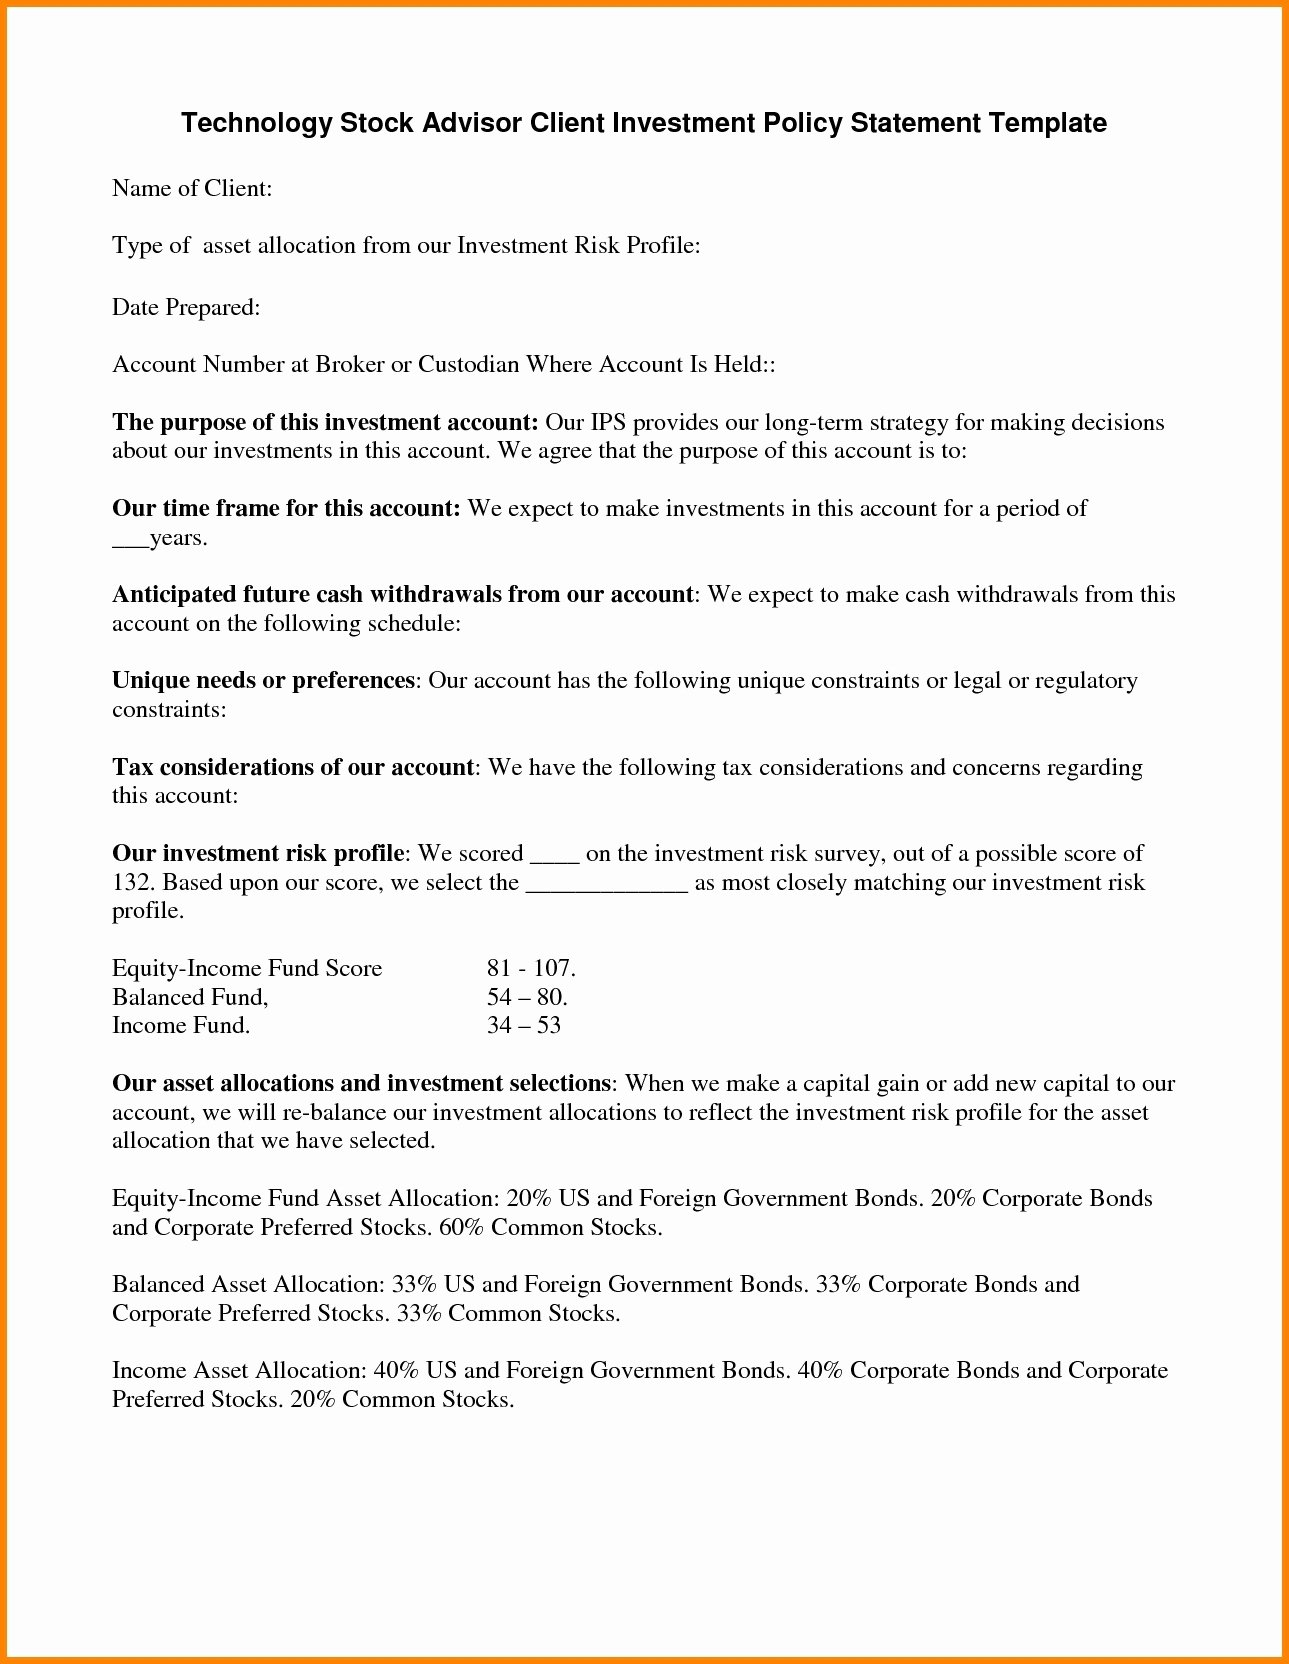 Investment Policy Statement Template Best Of Investment Policy Statement Template